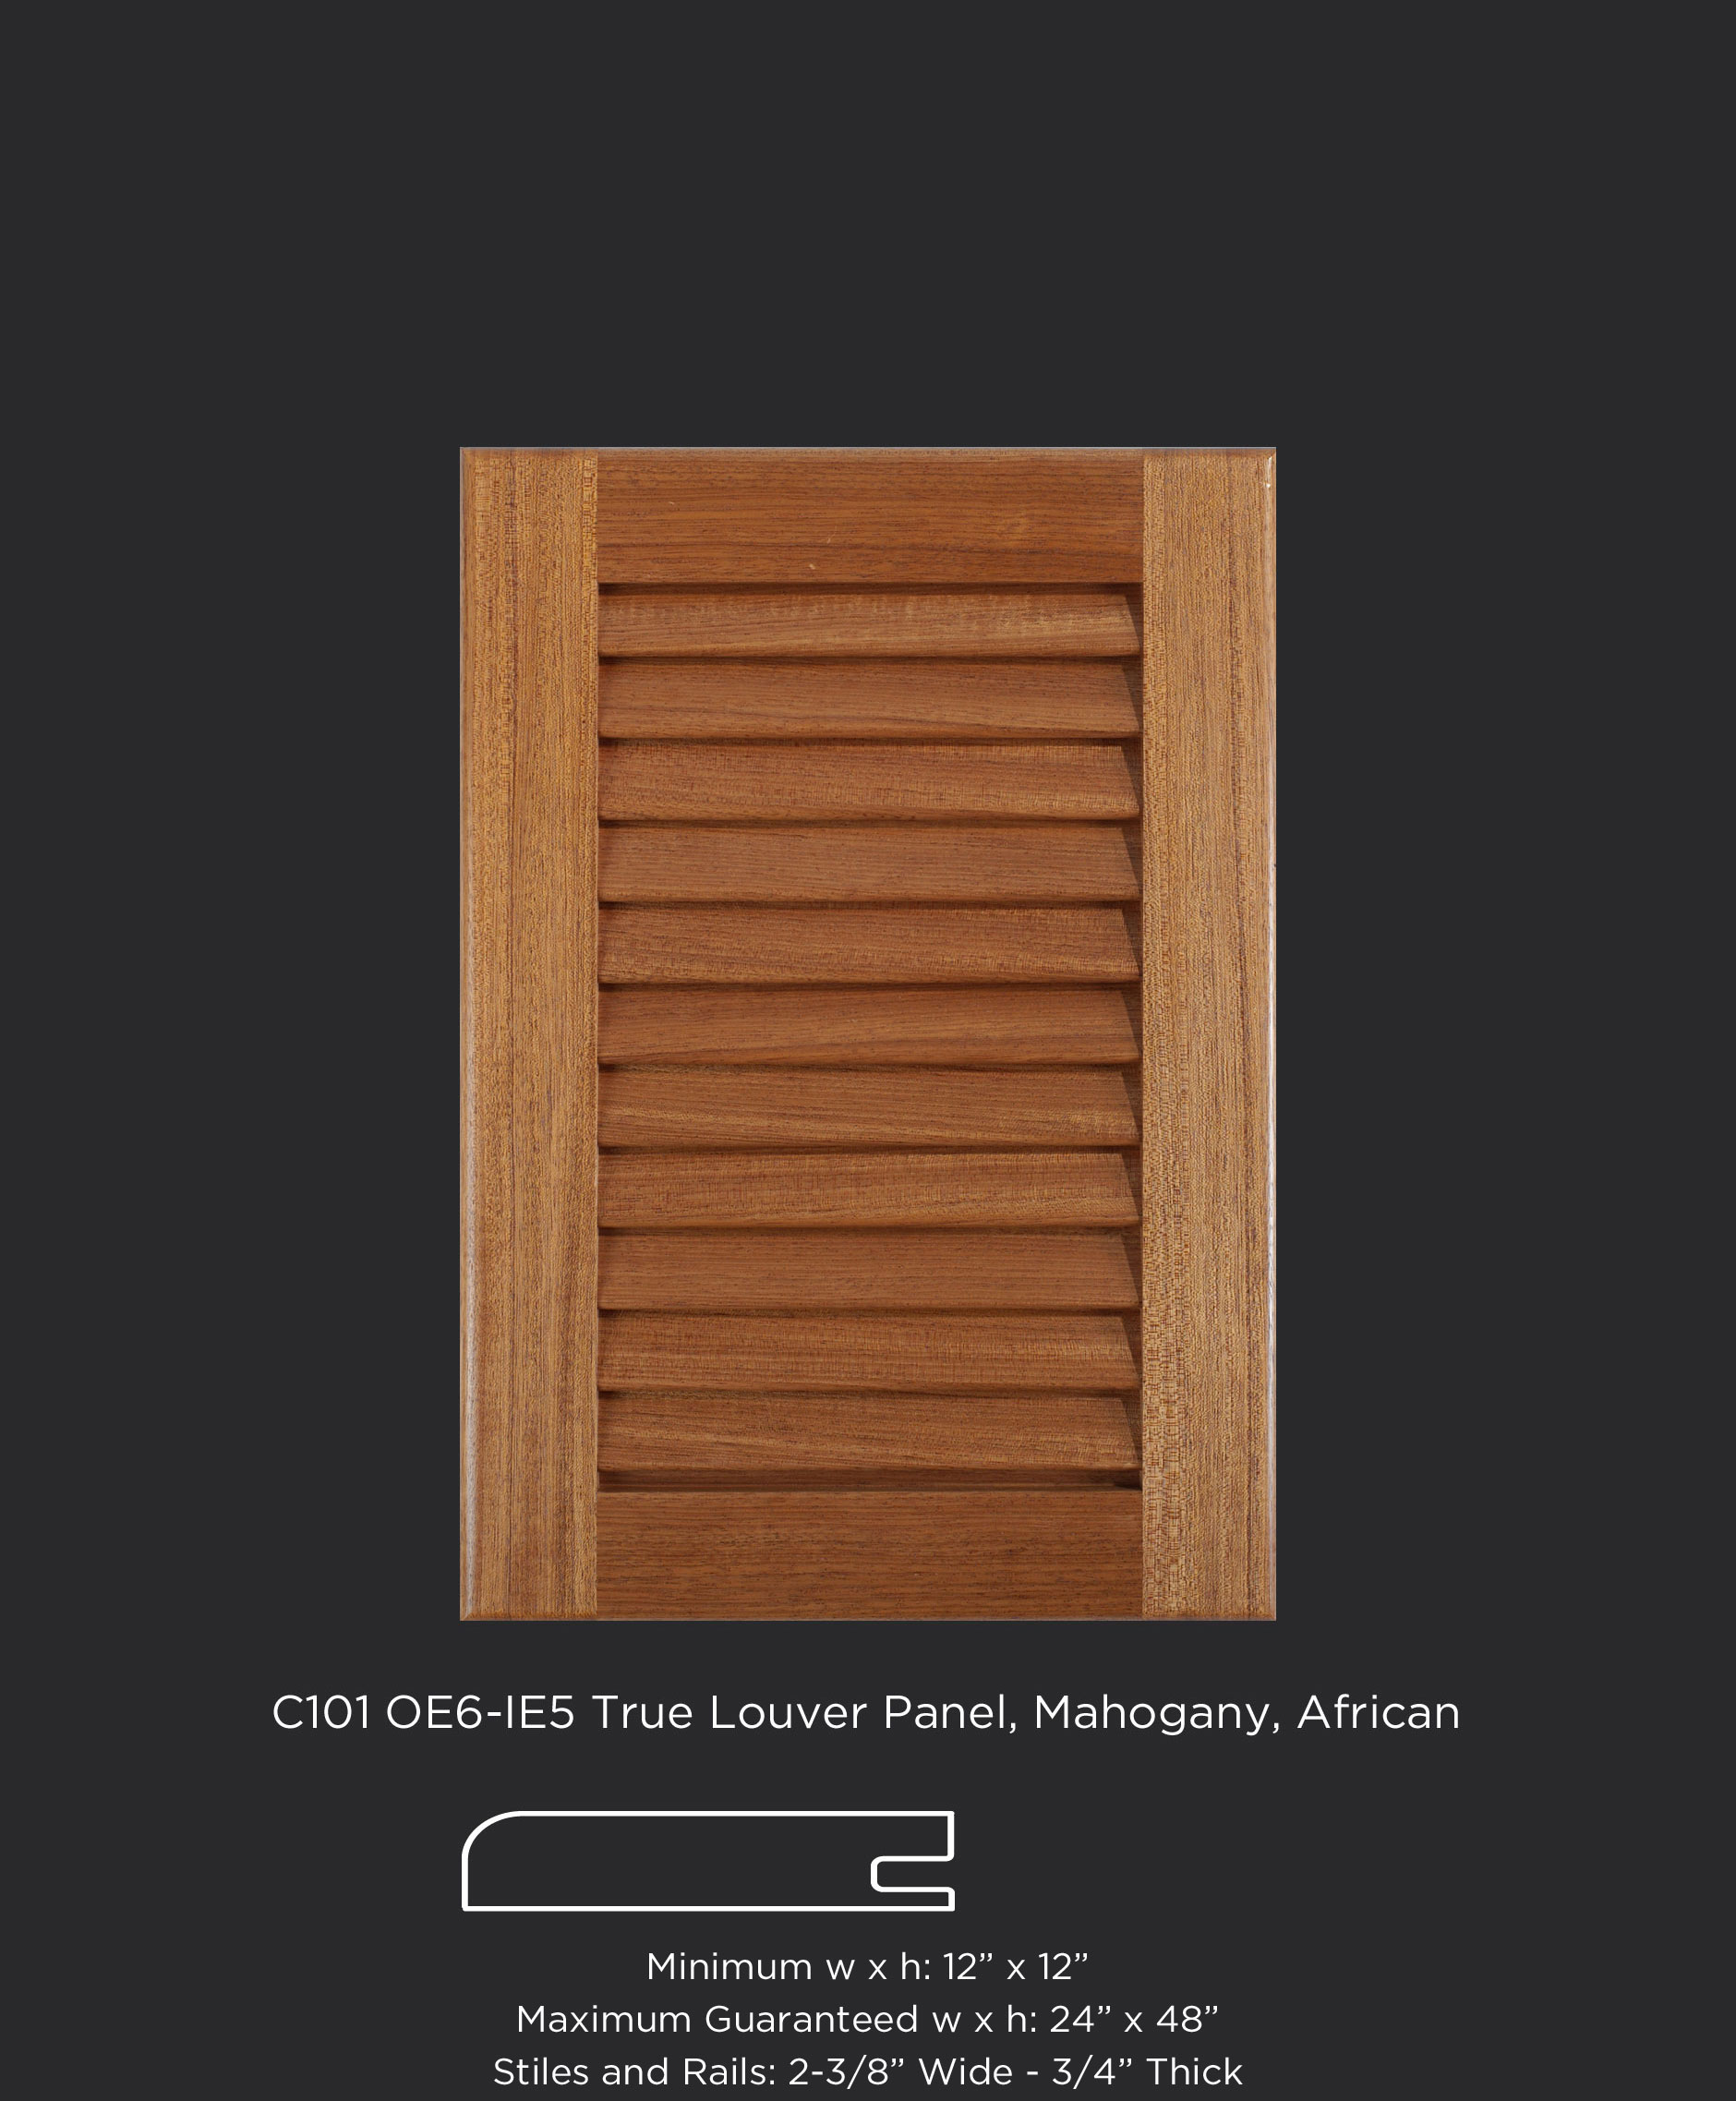 View Larger Image C101 Cope And Stick Cabinet Door With OE6 IE5 And True  Louver Panel In Mahogany,